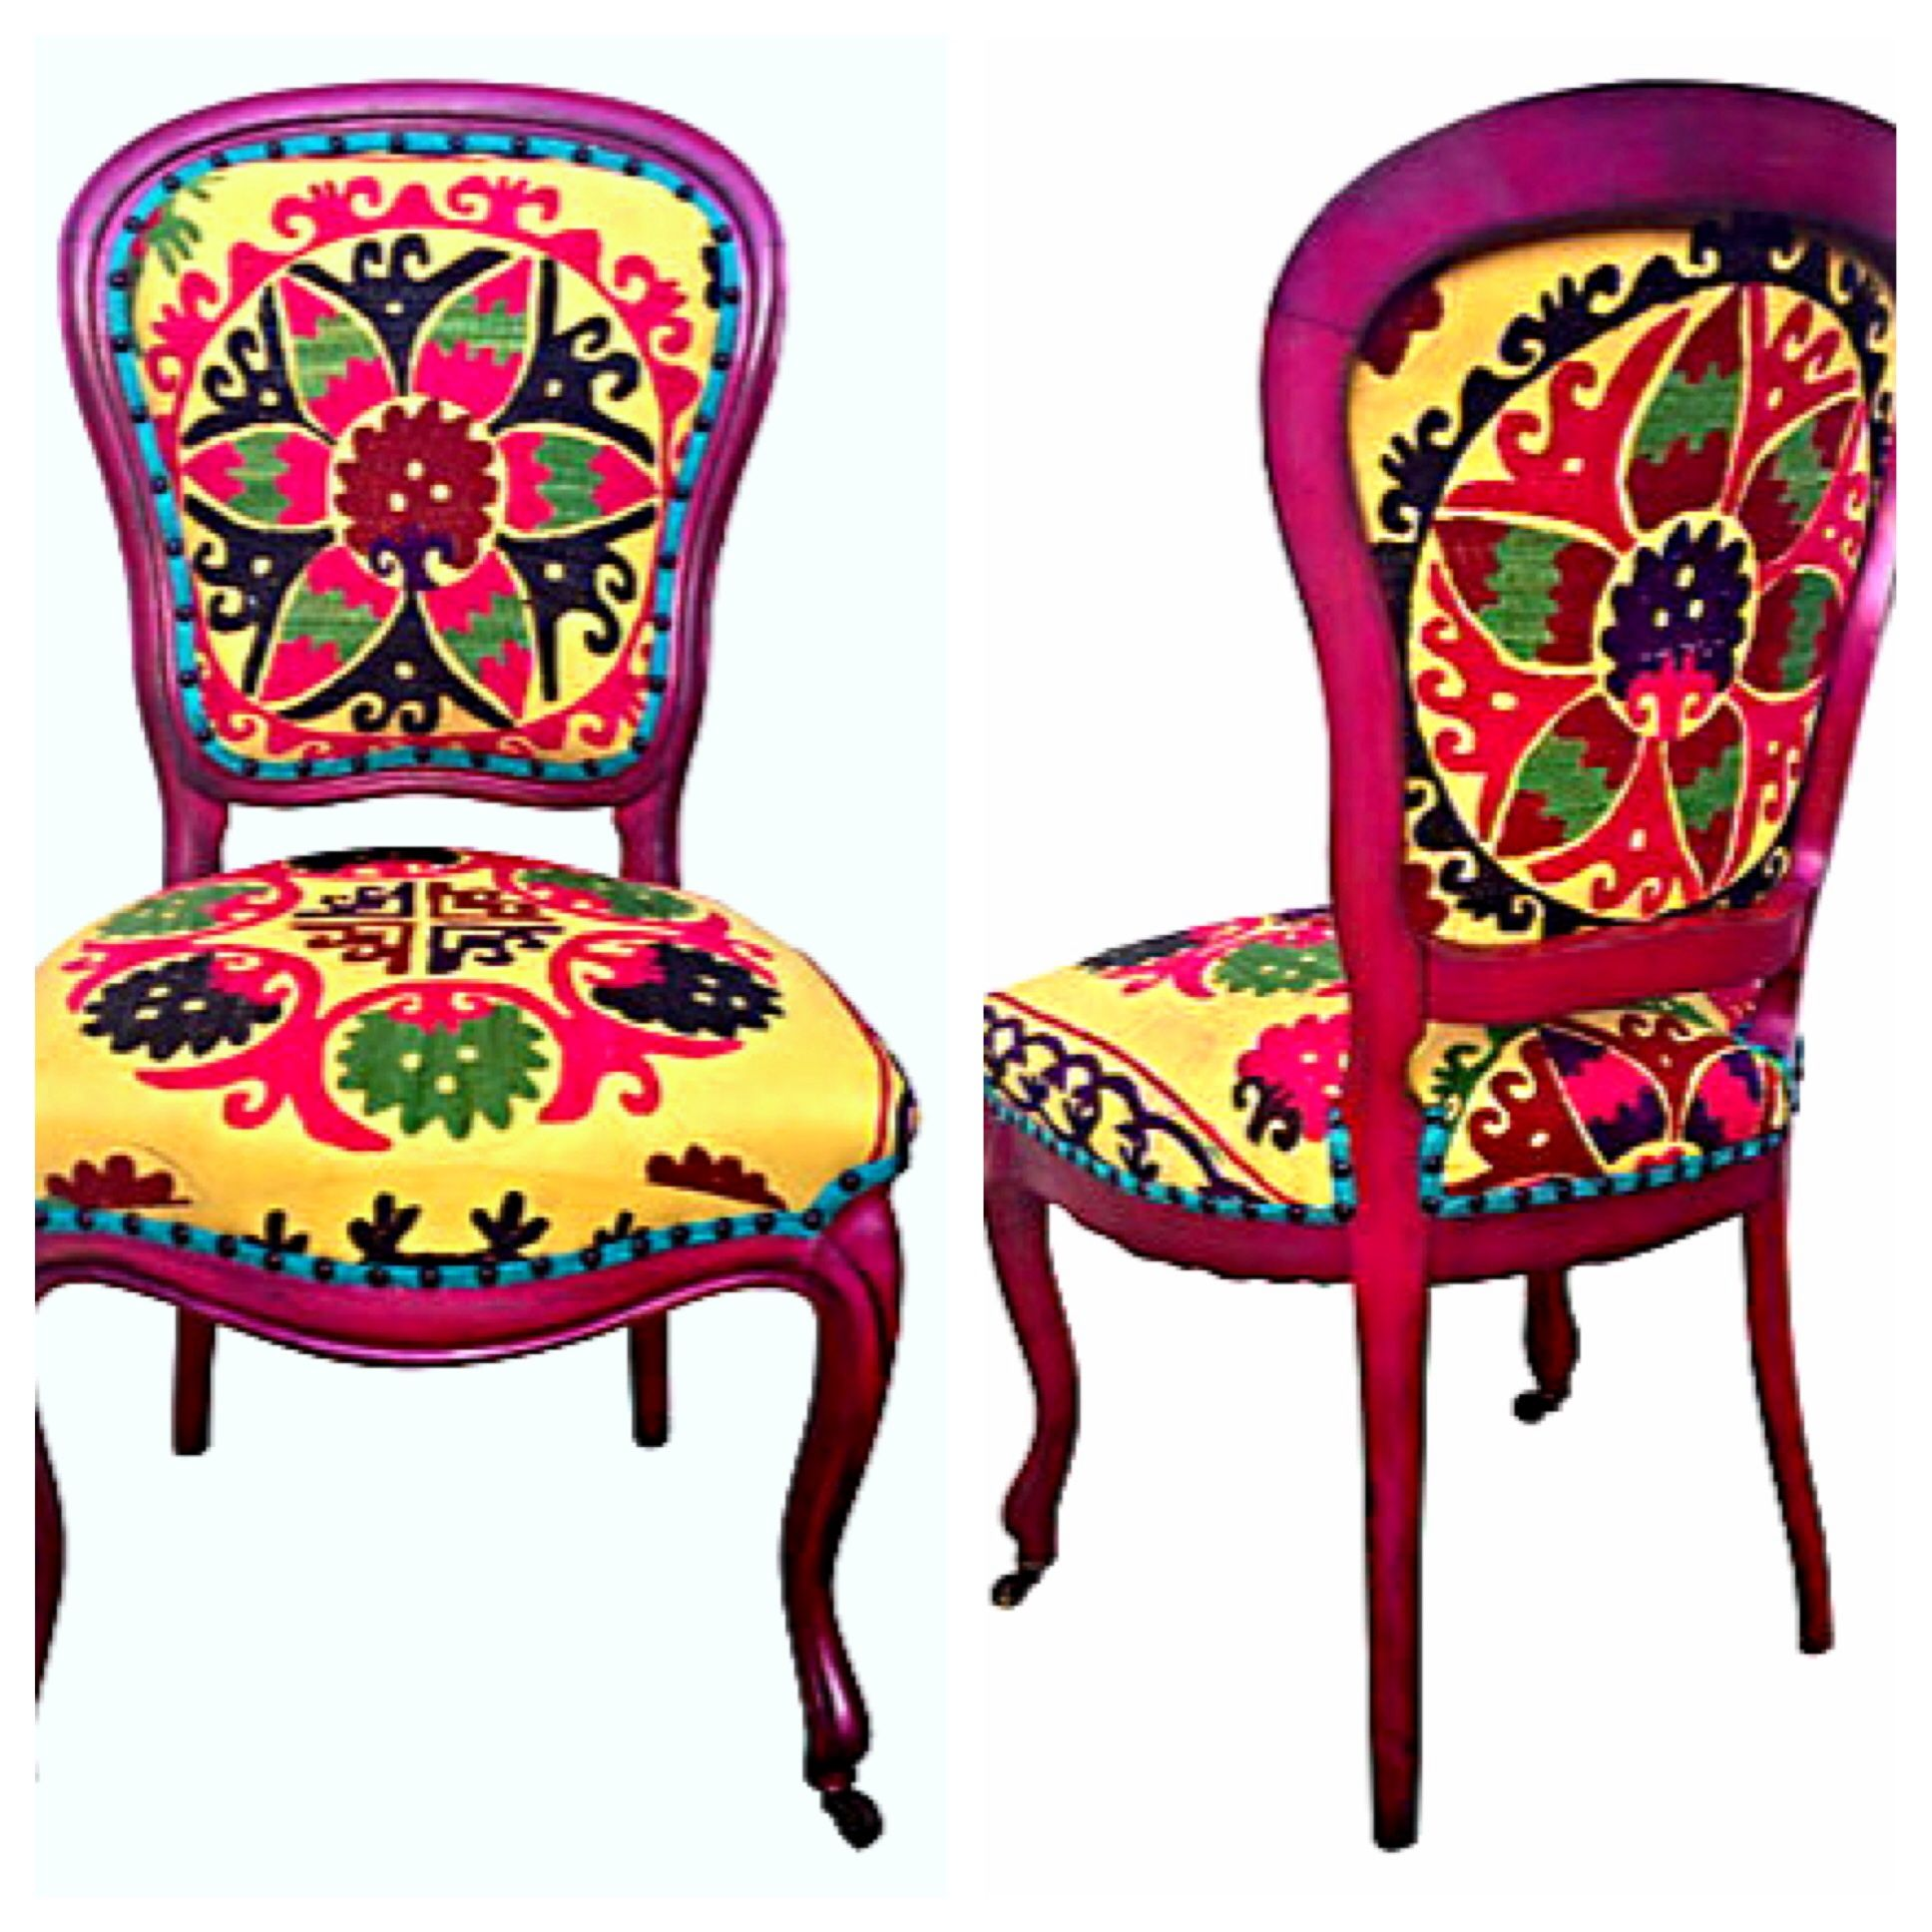 Antique vintage parlor side chair with front castors. Painted fuschia pink  and aged distressed finish